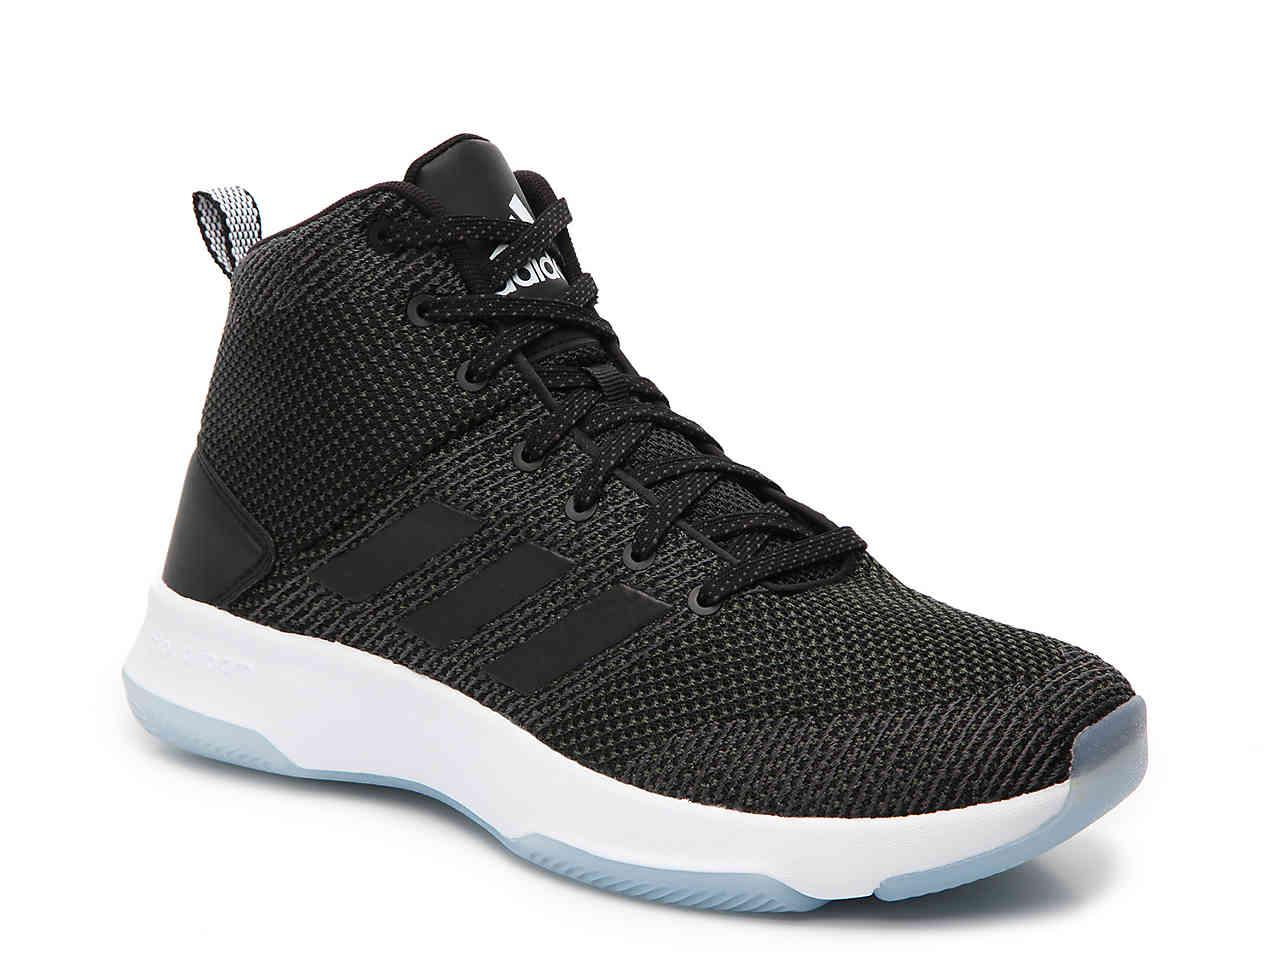 4a48ac2b5d9 Lyst - adidas Cloudfoam Ignition Basketball Shoe in Black for Men